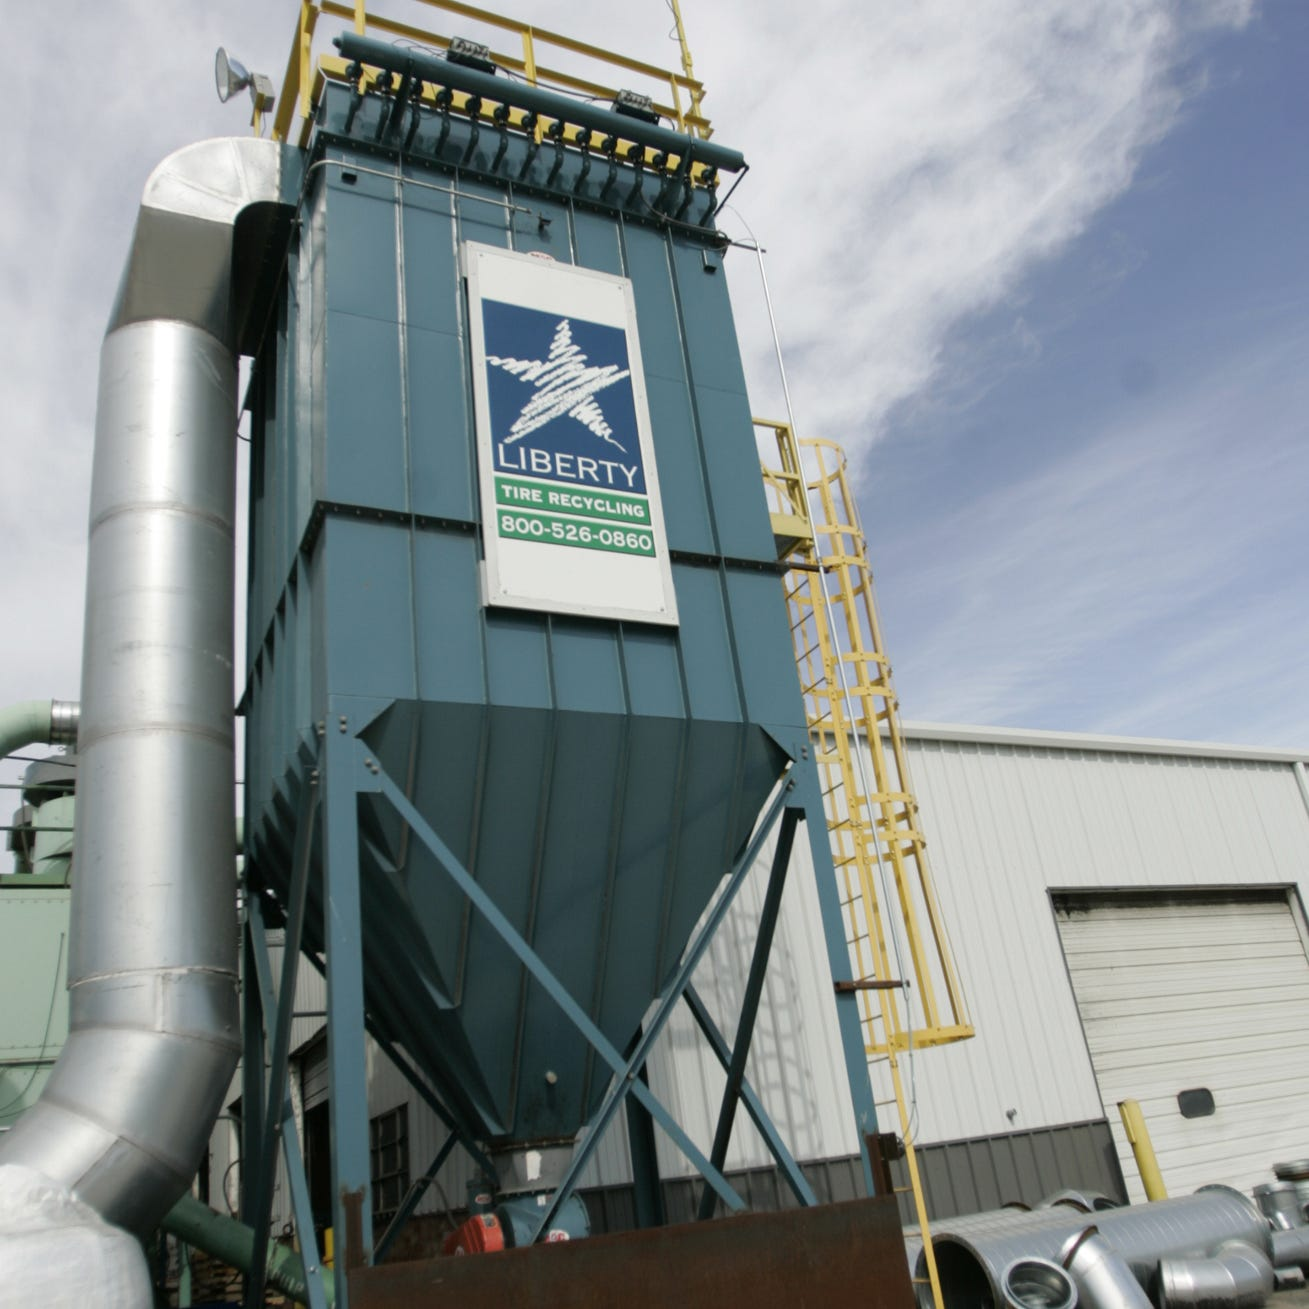 Man's arm severely injured after getting caught in machine at Des Moines tire recycling facility